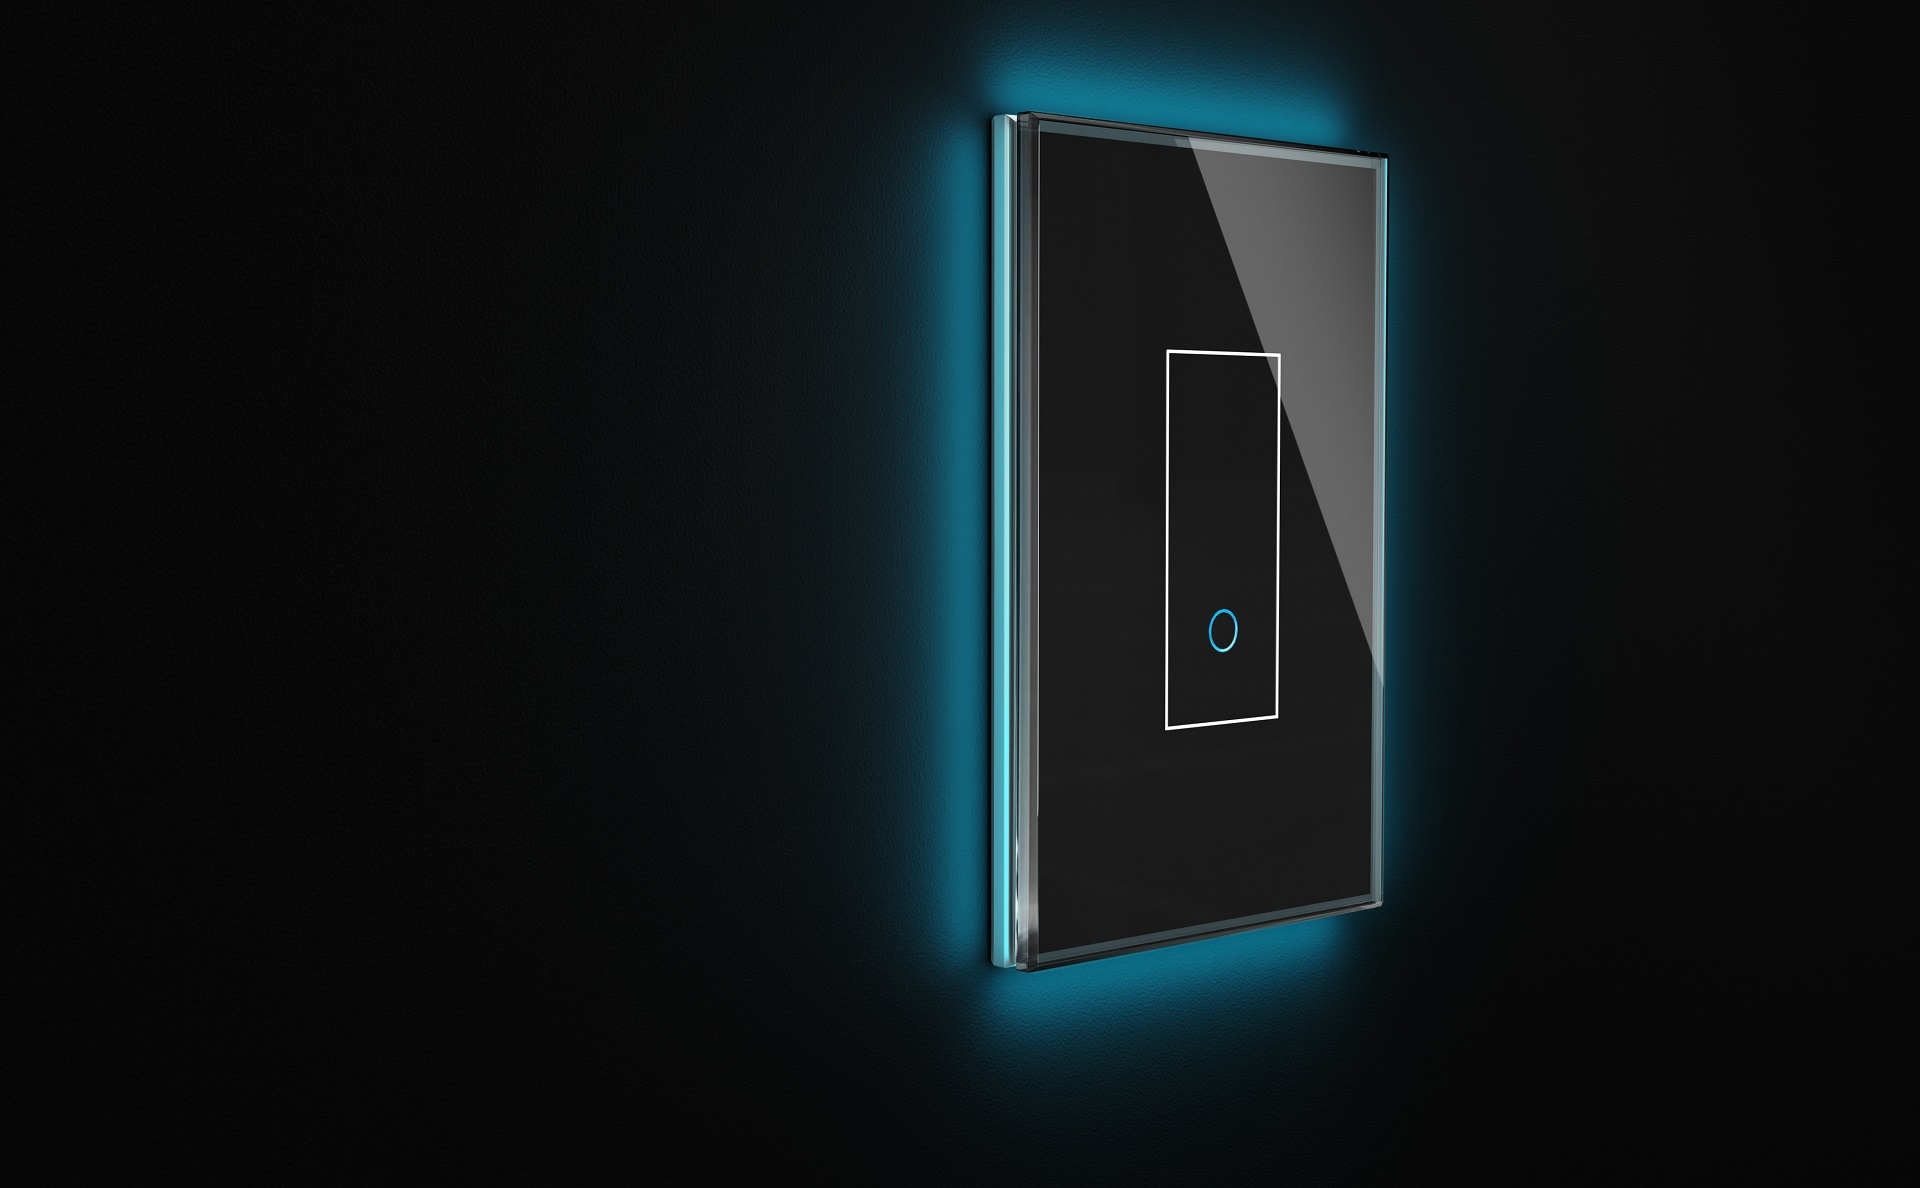 The Future is Here with Iotty\'s Revolutionary Smart Light Switch